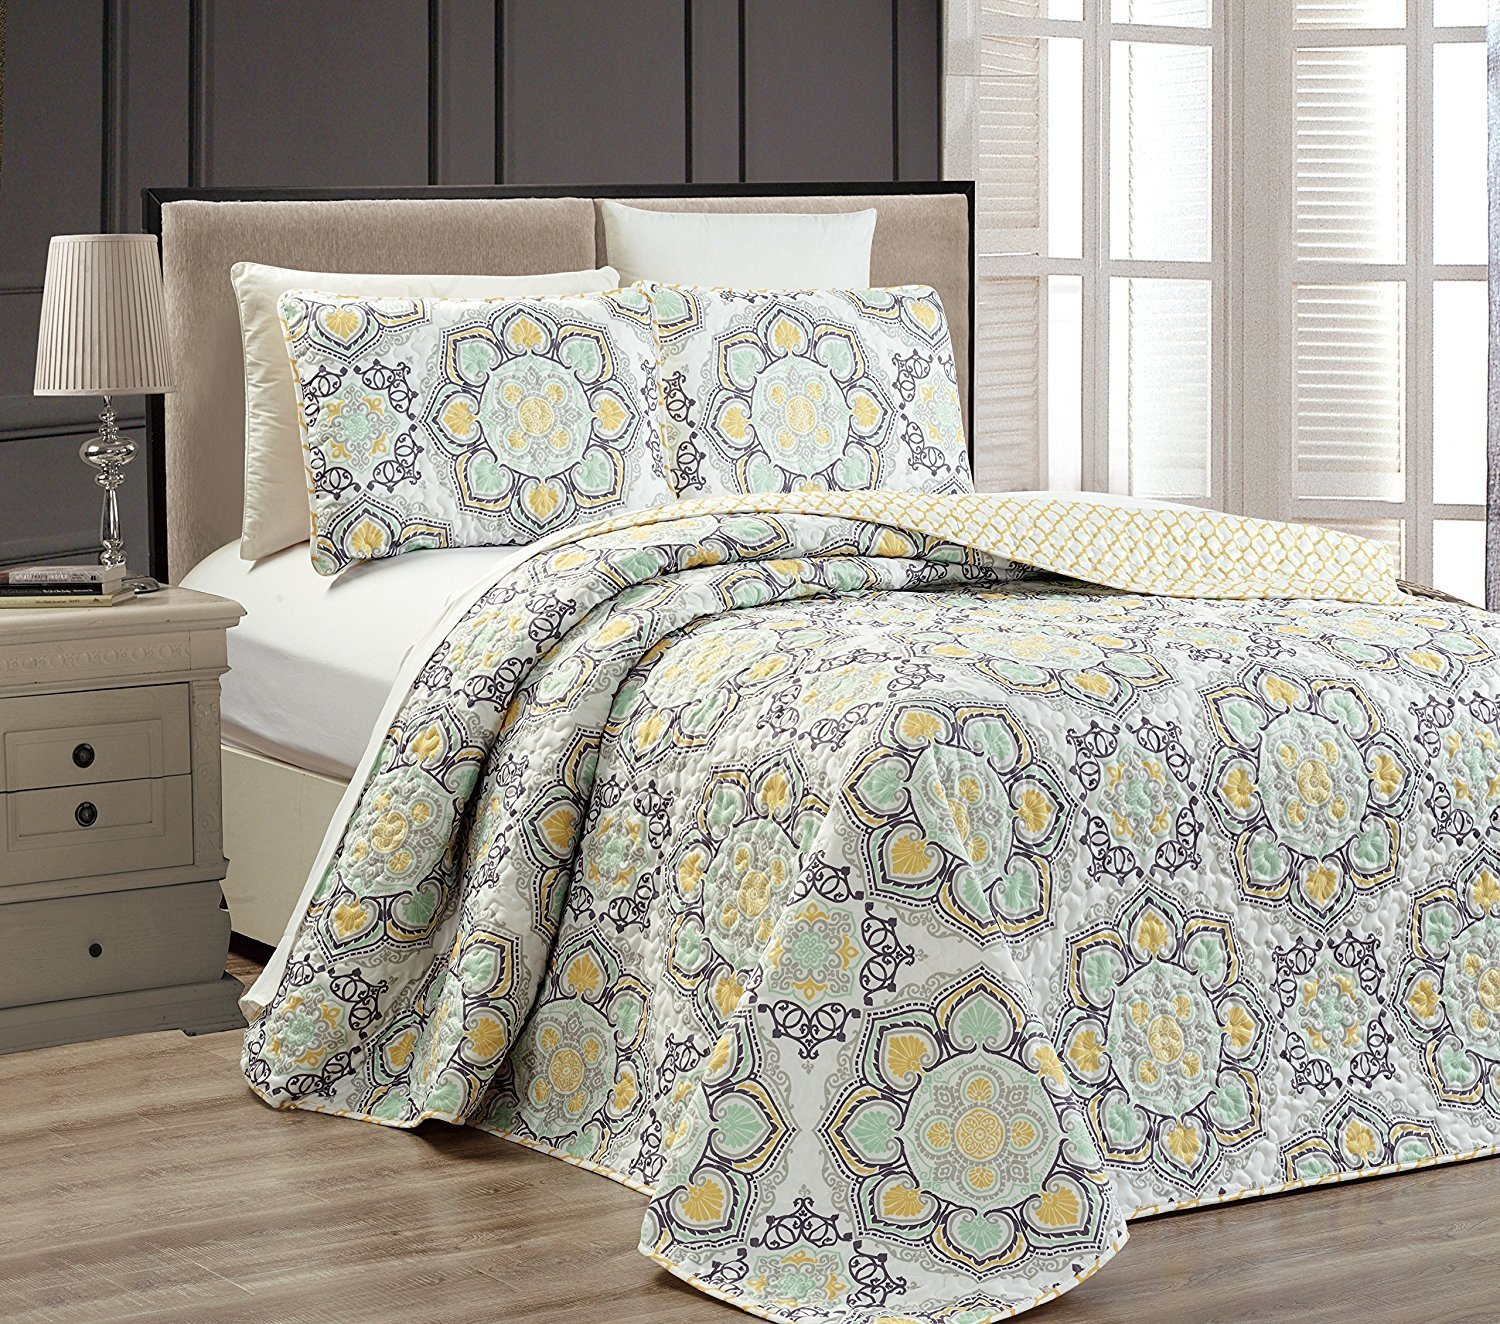 Mk Collection 3pc Queen Oversize Reversible Quilted Bedspread Set Floral Yellow White Gray Light Green New